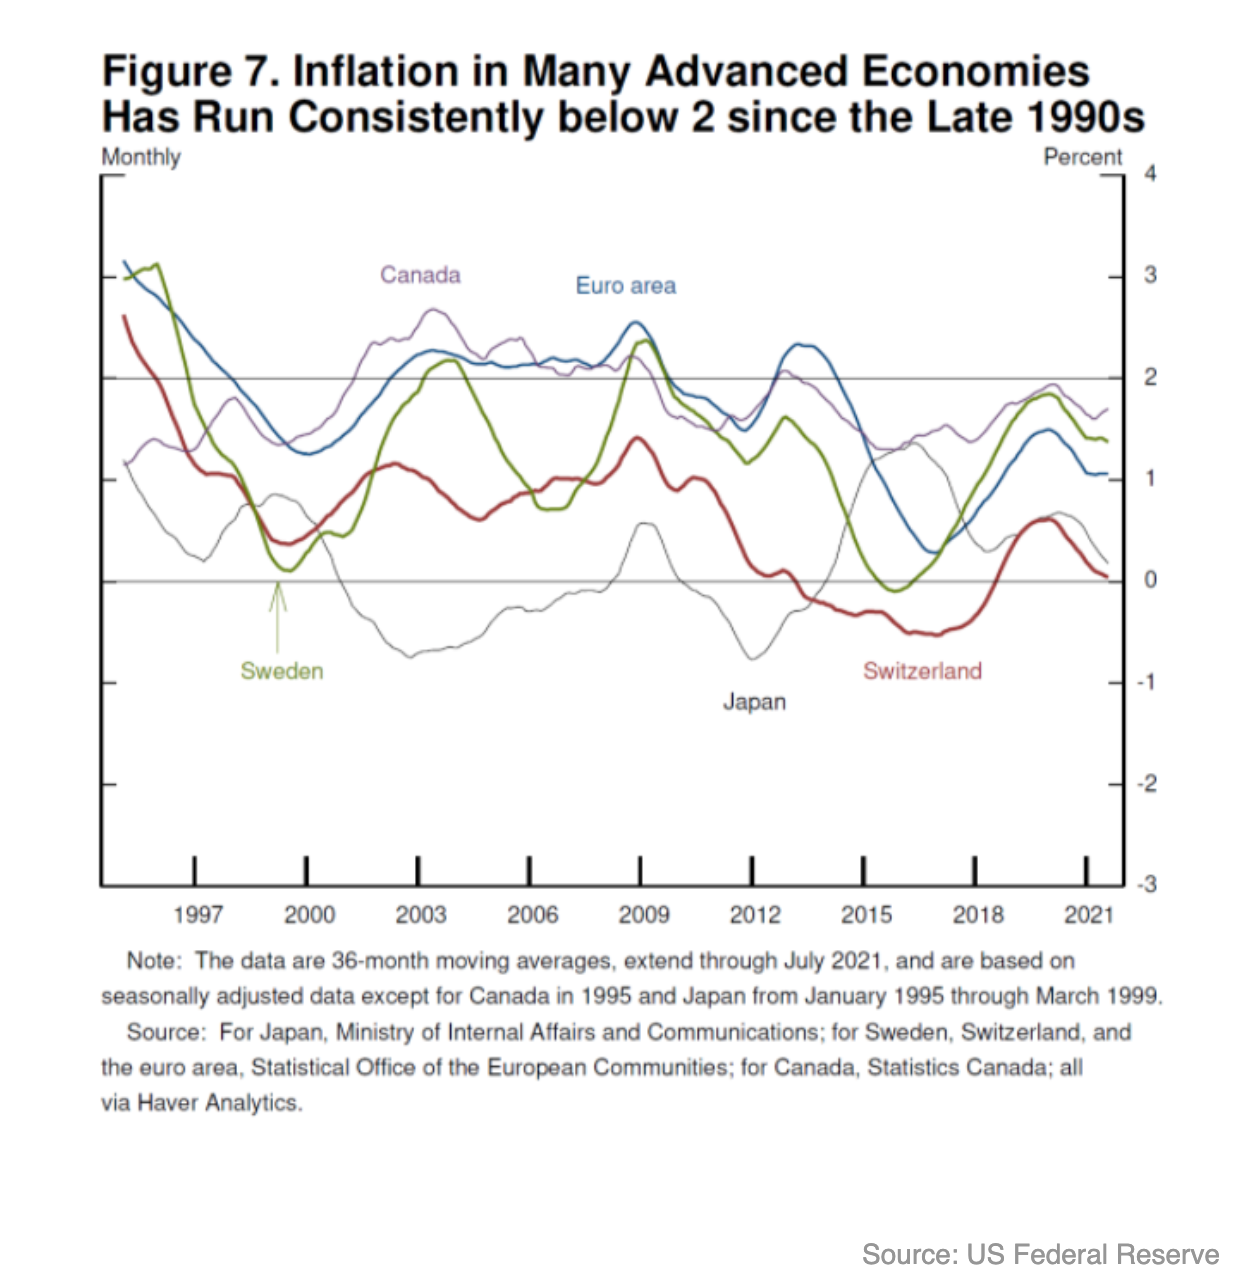 Inflation in advanced economies